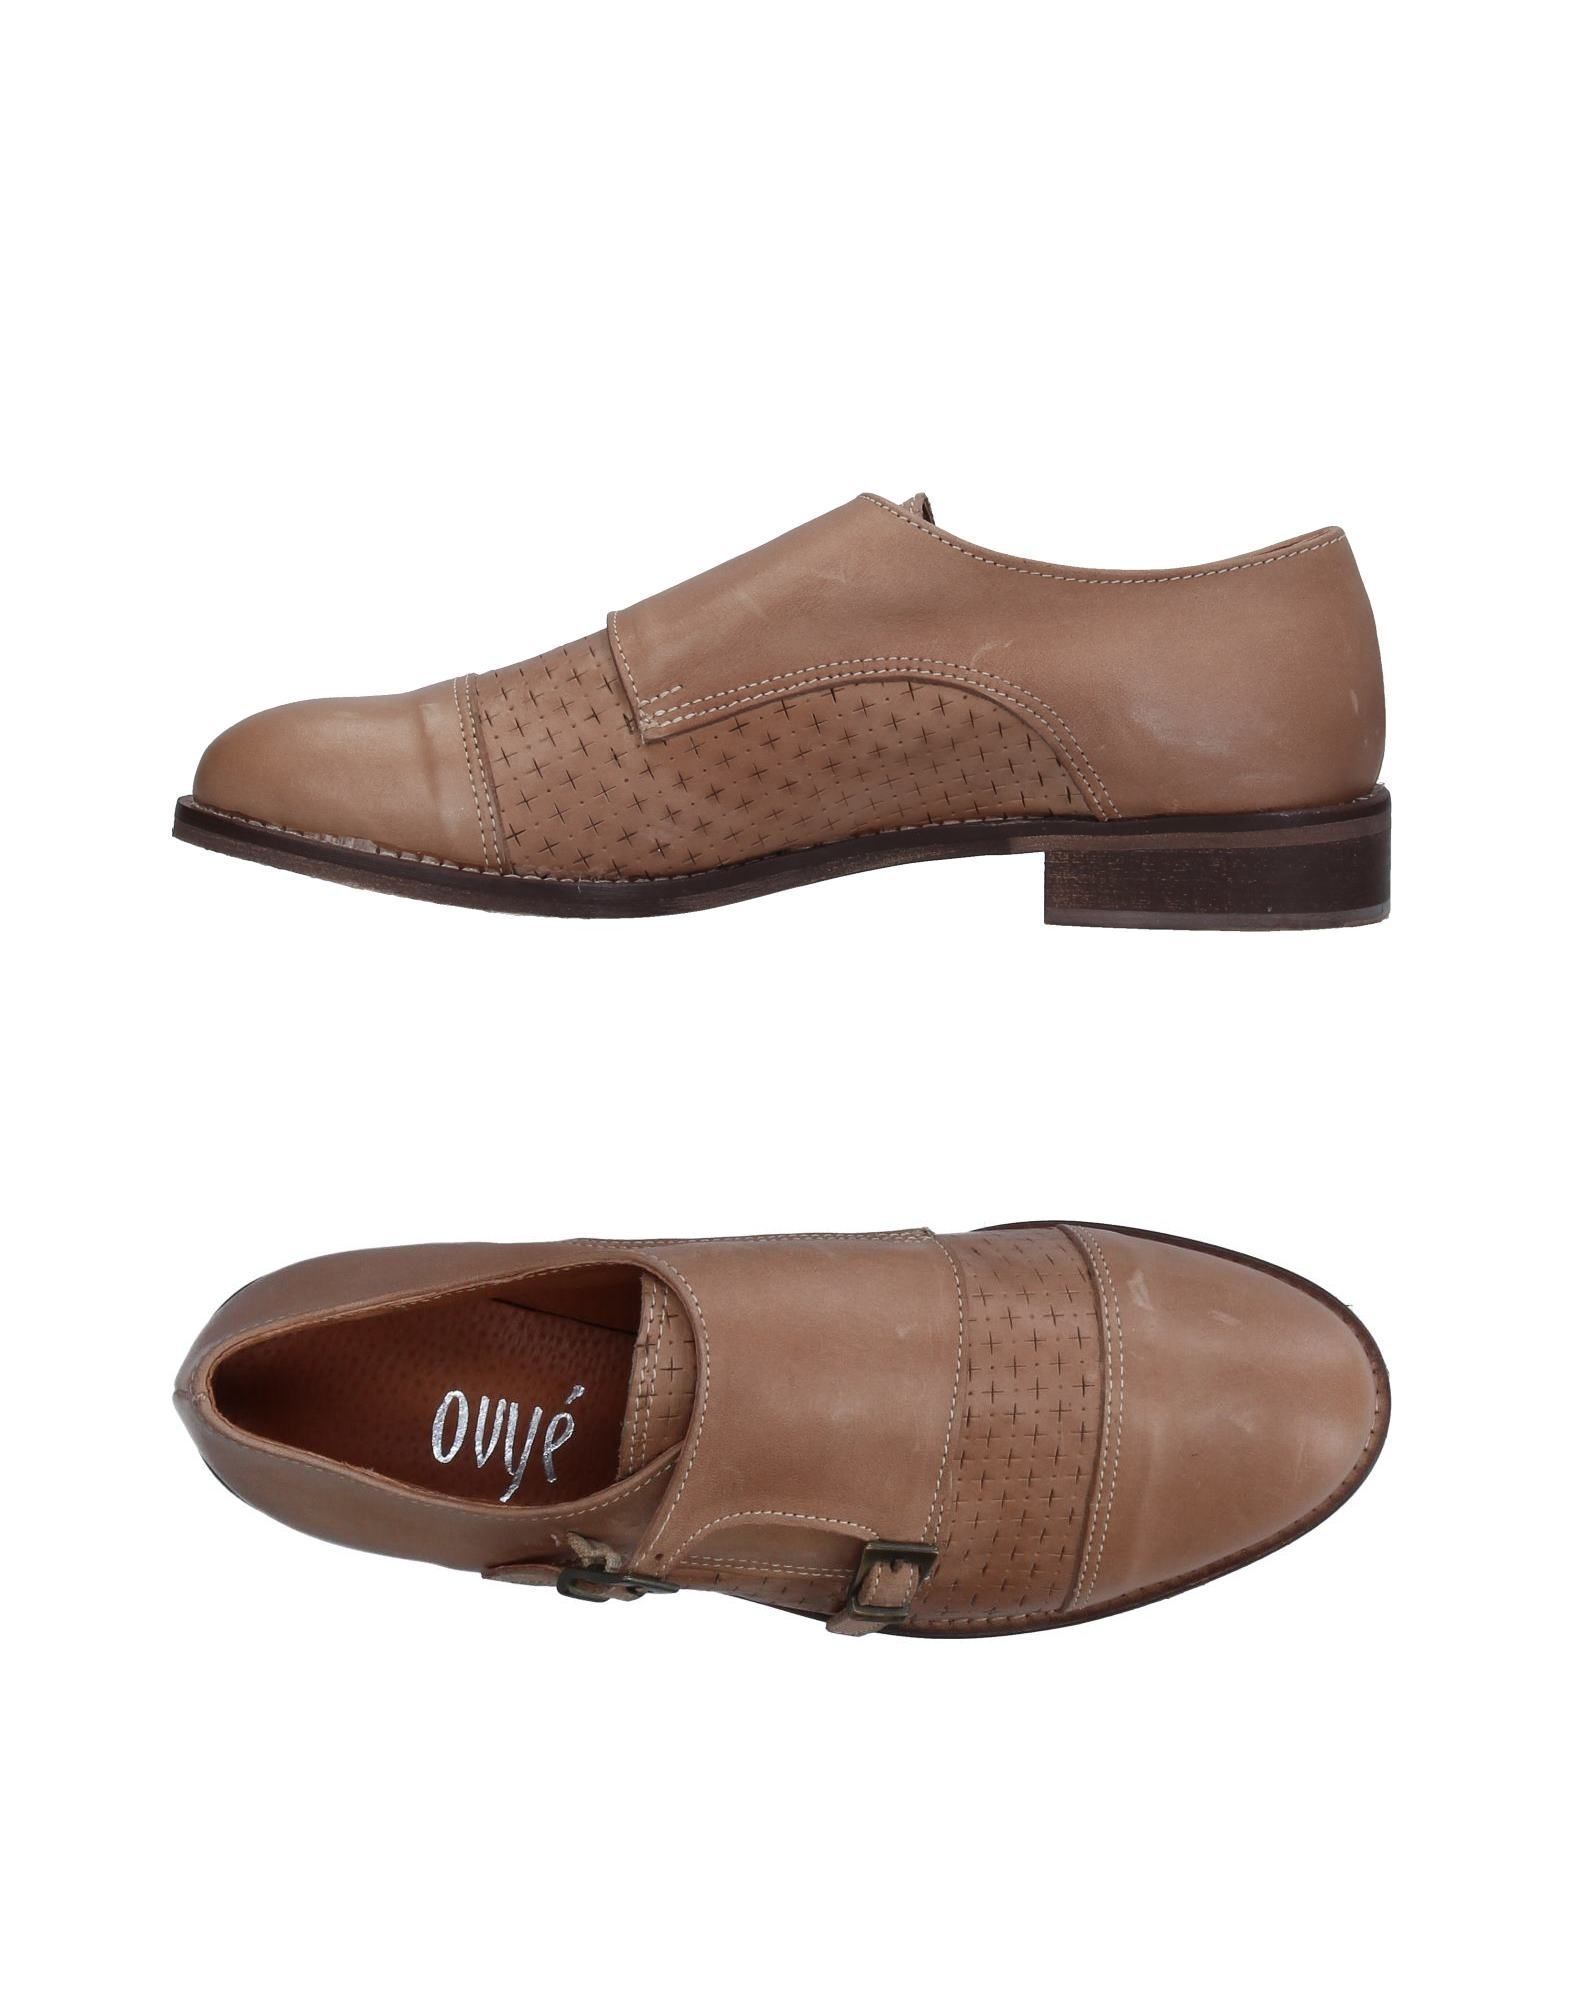 Mocassins Ovye By Cristina Lucchi Femme - Mocassins Ovye By Cristina Lucchi sur